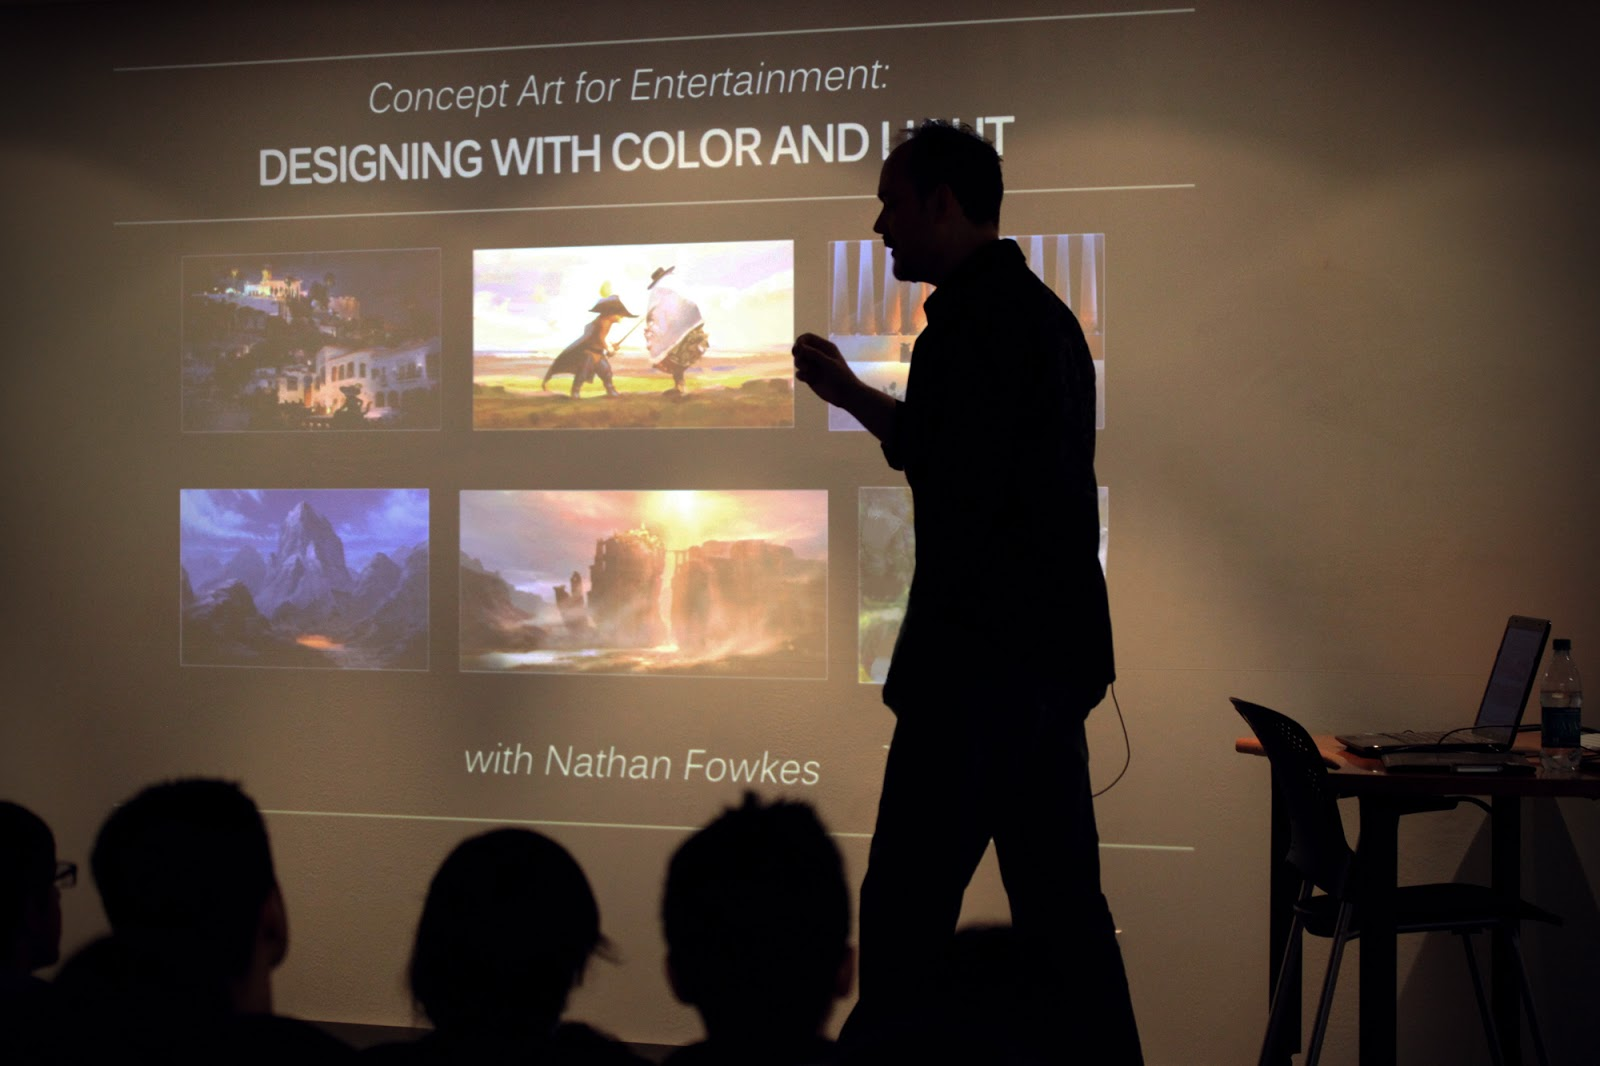 Color booth online - April 17 19 Booth X 26 Schoolism Live Artist Workshops In Calgary April 20 21 Designing With Color And Light Online Course Begins May 31